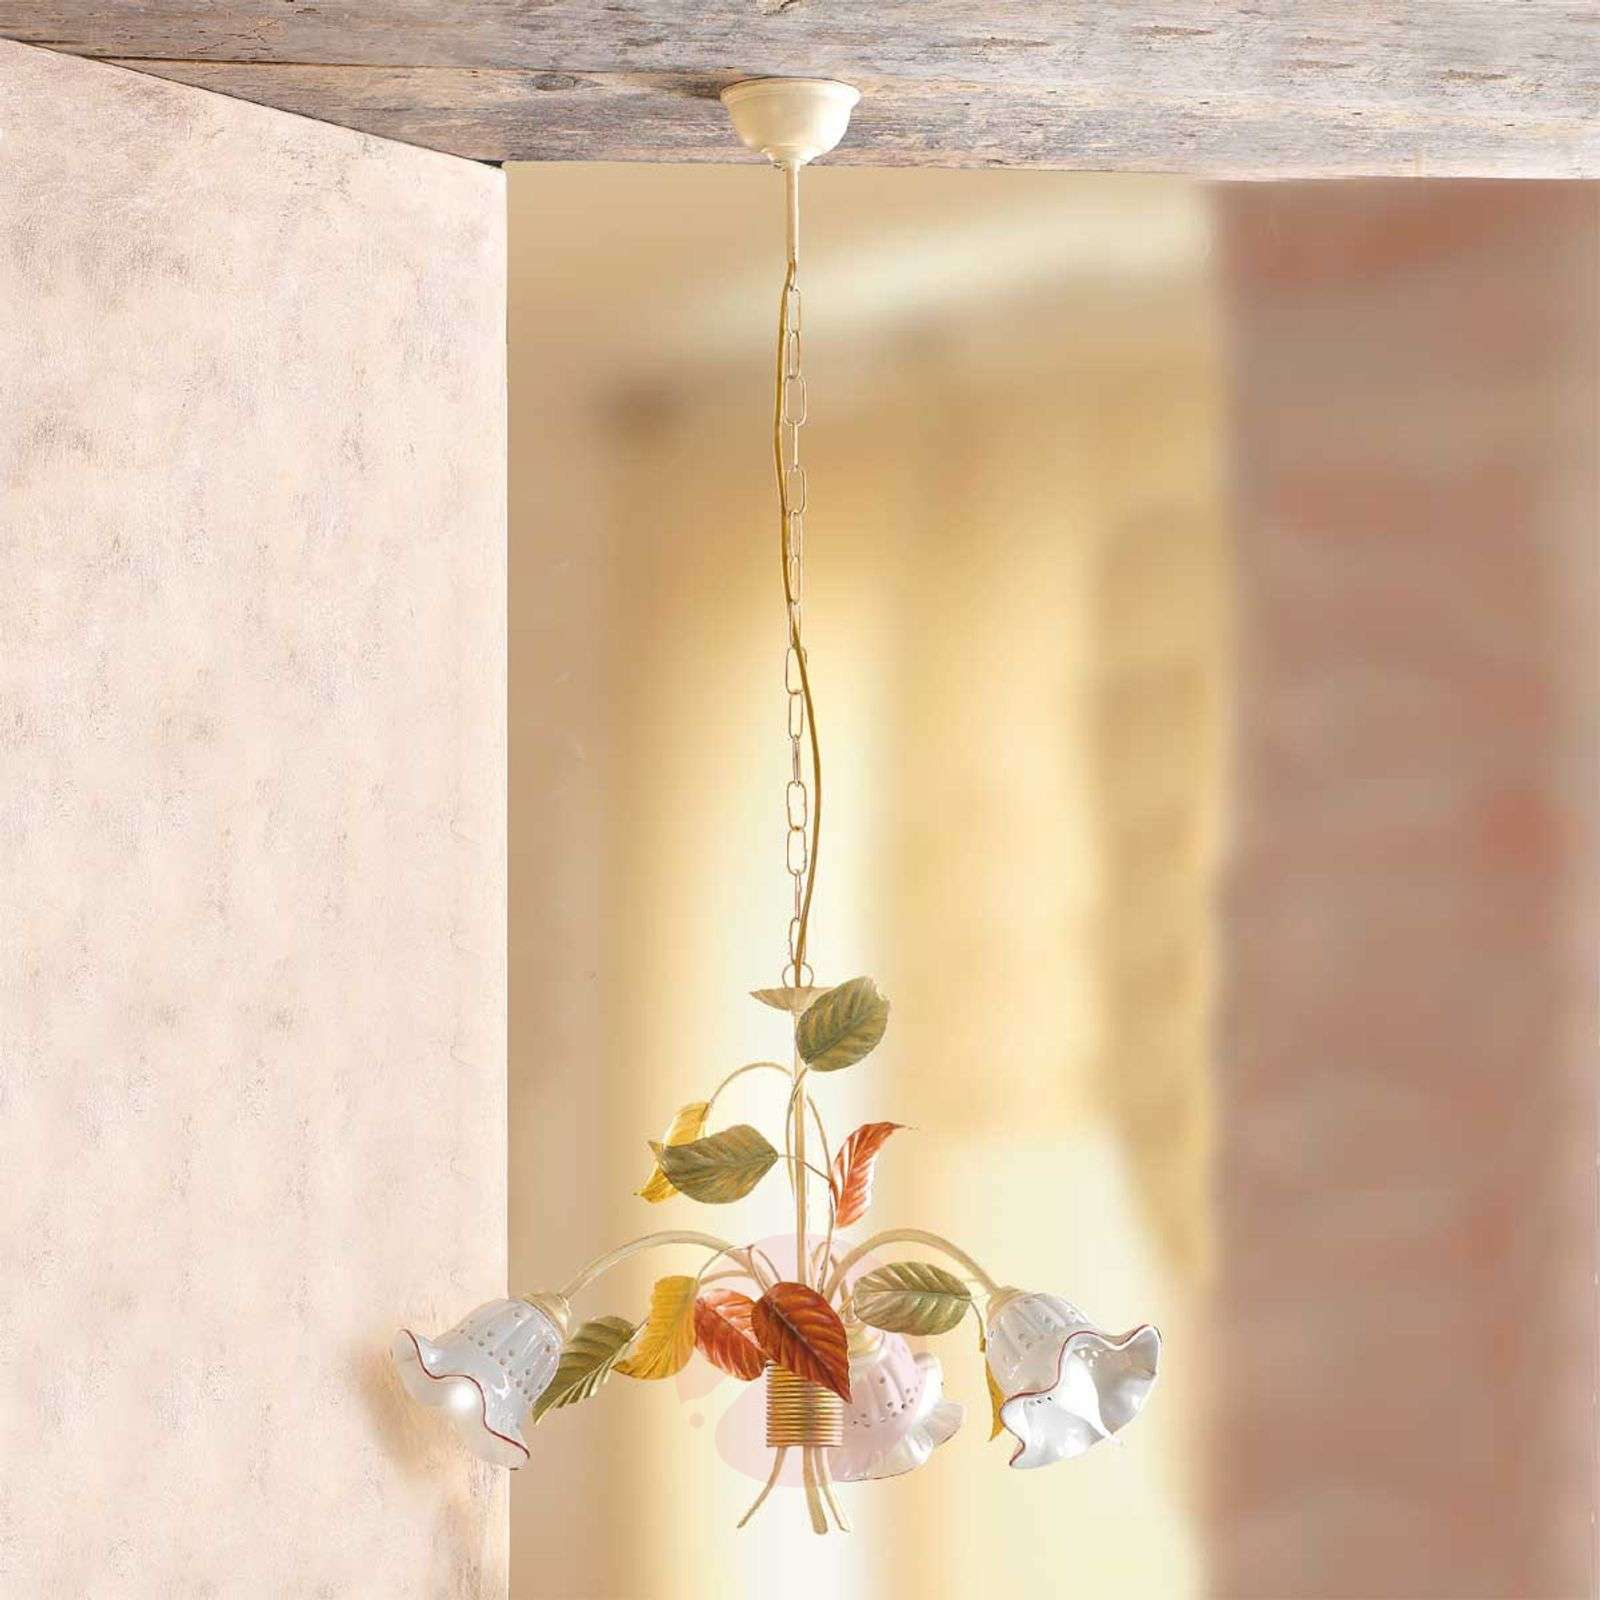 Suspension Flora de style florentin